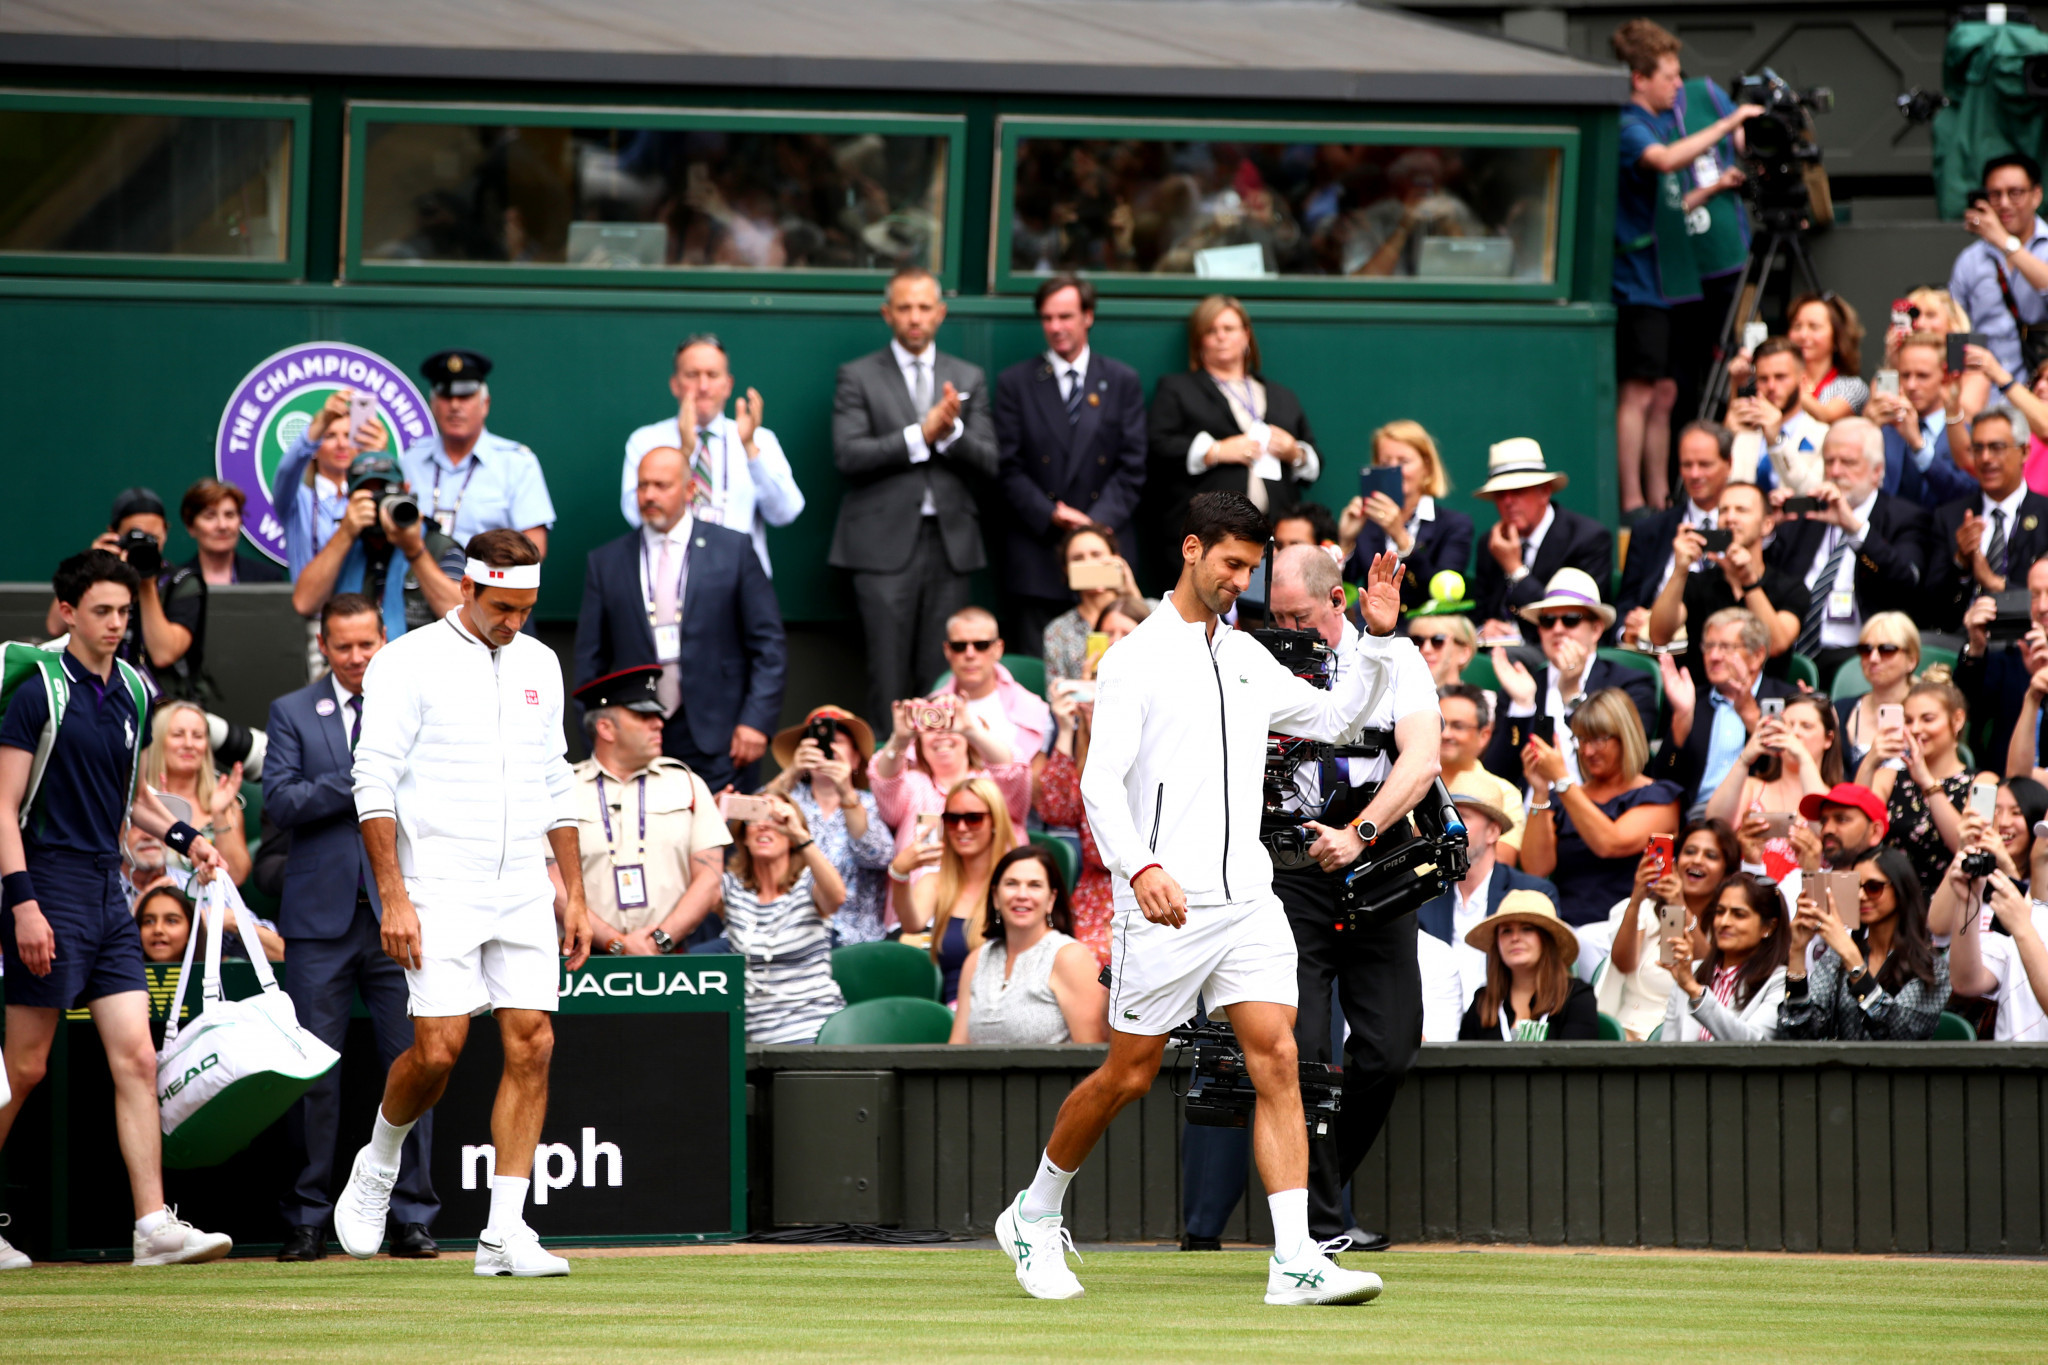 The scene was set for a Centre Court classic as Djokovic and Federer entered the arena ©Getty Images